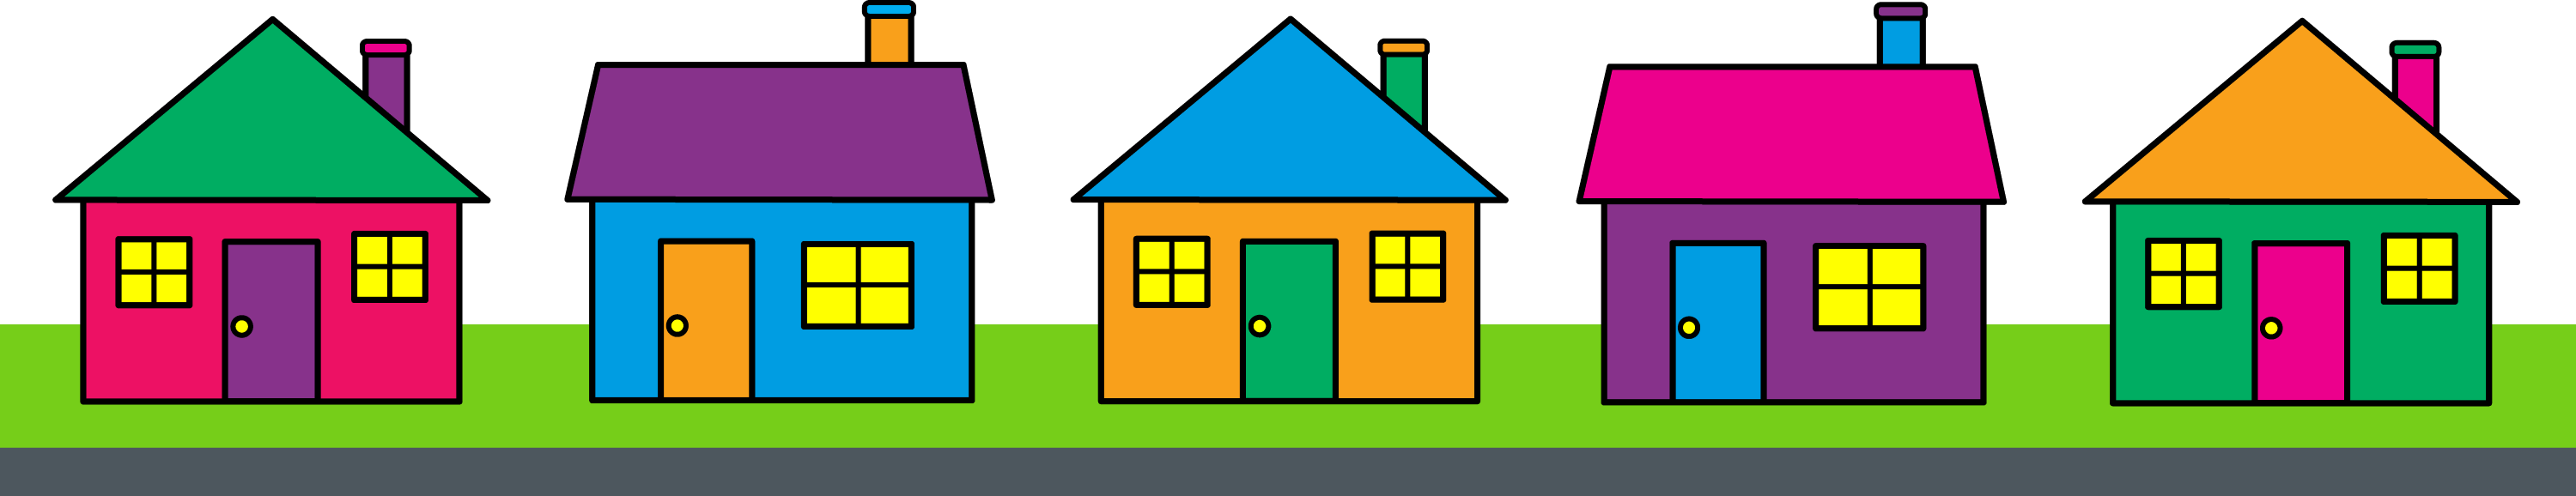 Incredible Neighborhood House Clip Art Free 10445 x 2014 · 126 kB · png